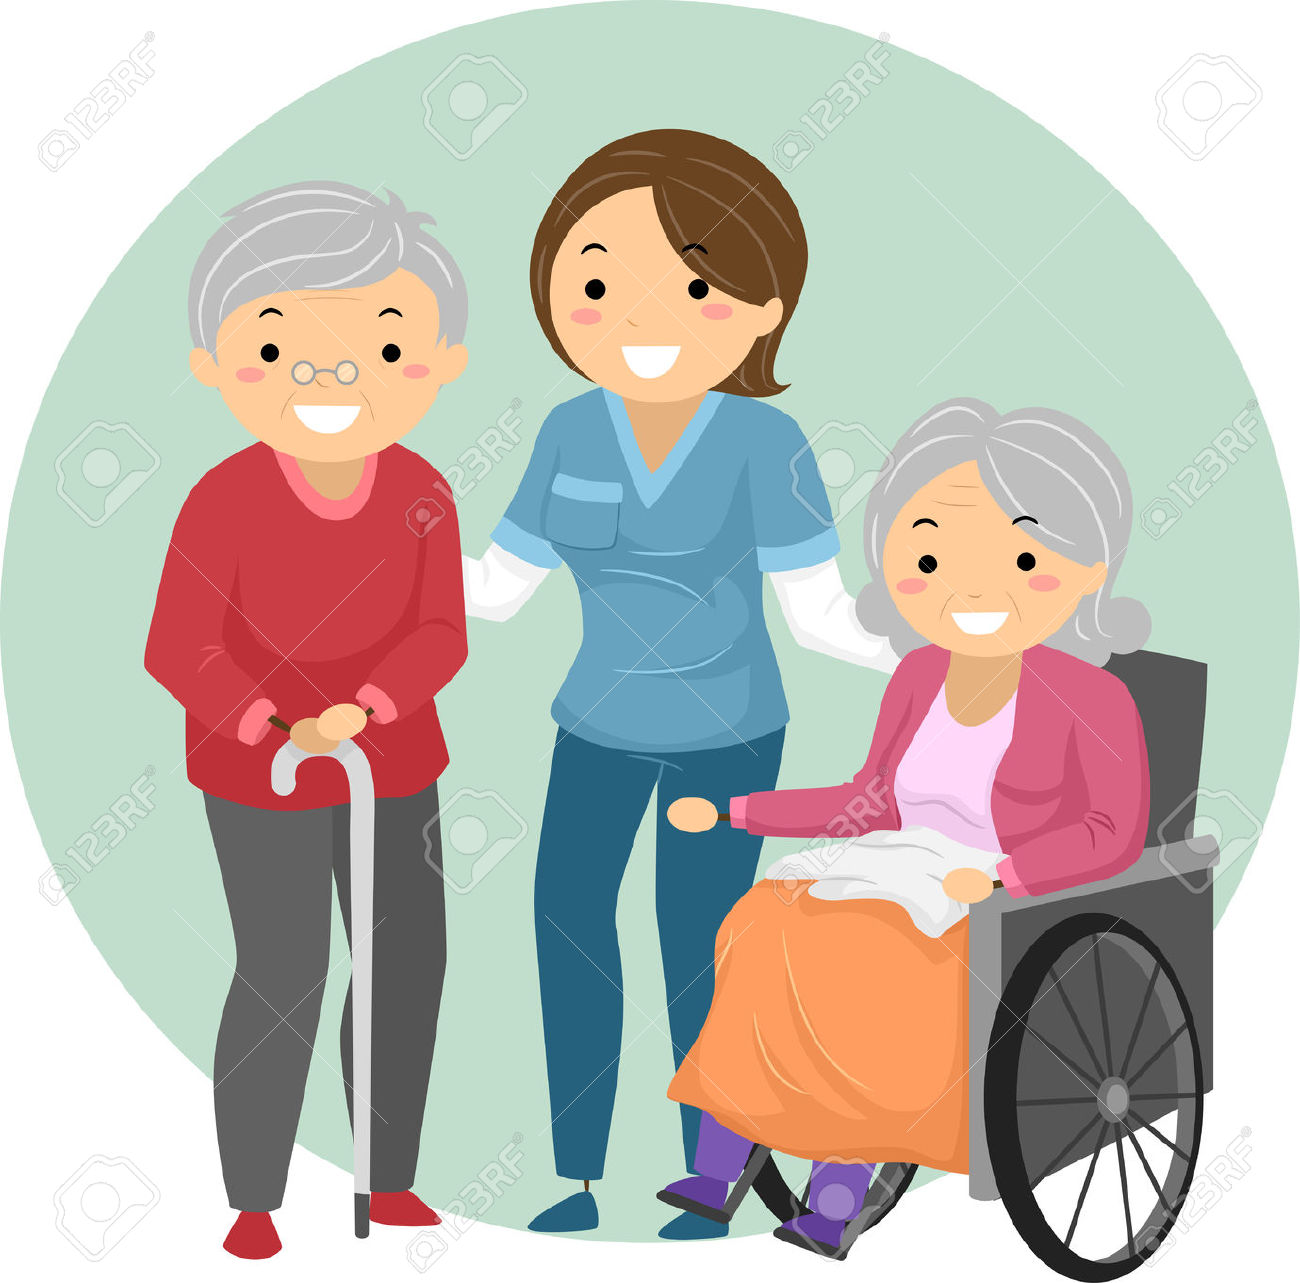 Free clipart images lady caring for elderly person.